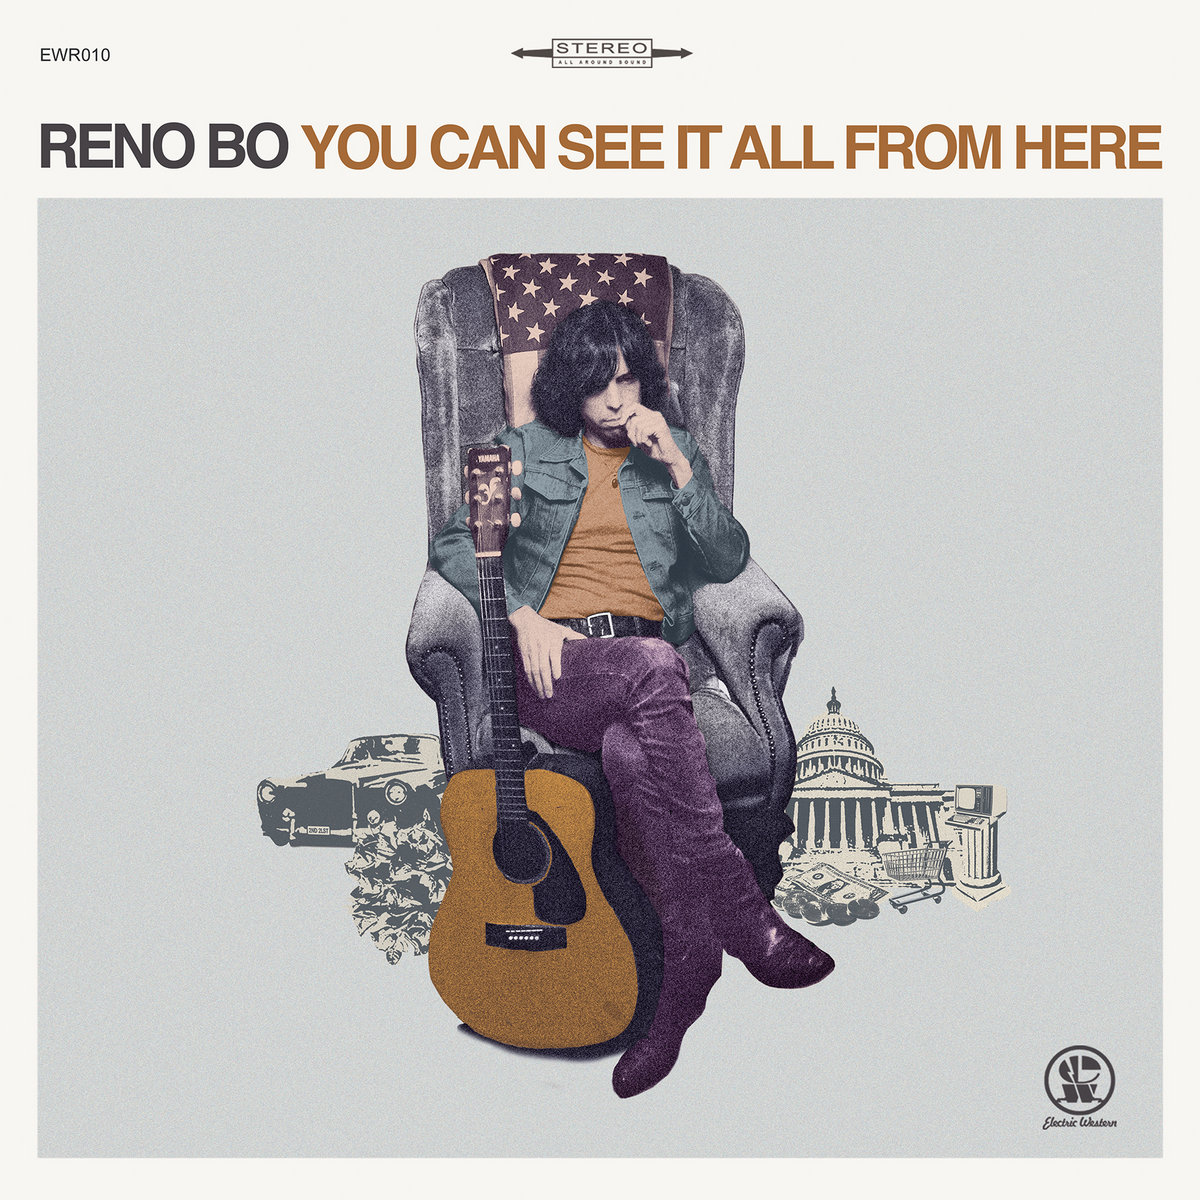 Reno Bo - You can see it all from here